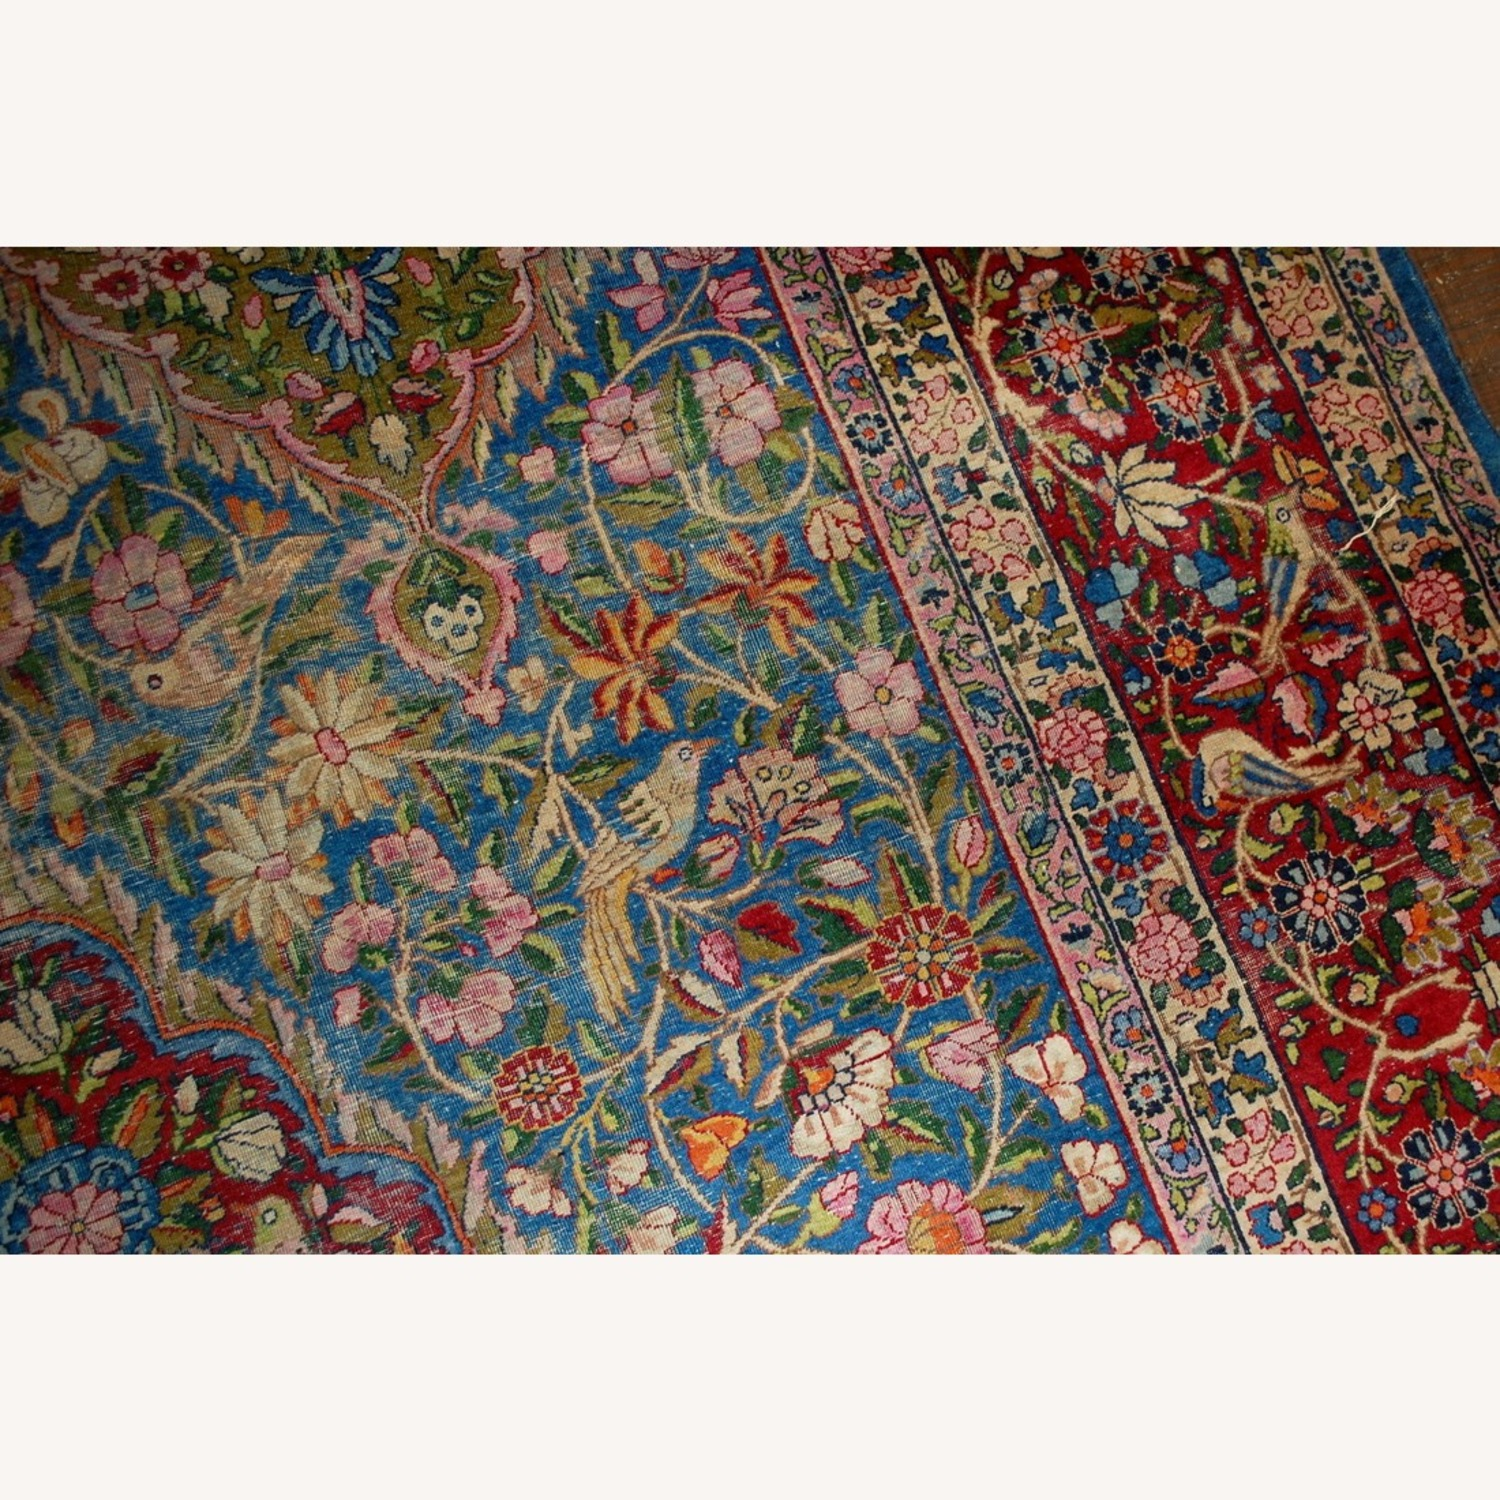 Hand made Antique Persian Yazd Rug - image-12